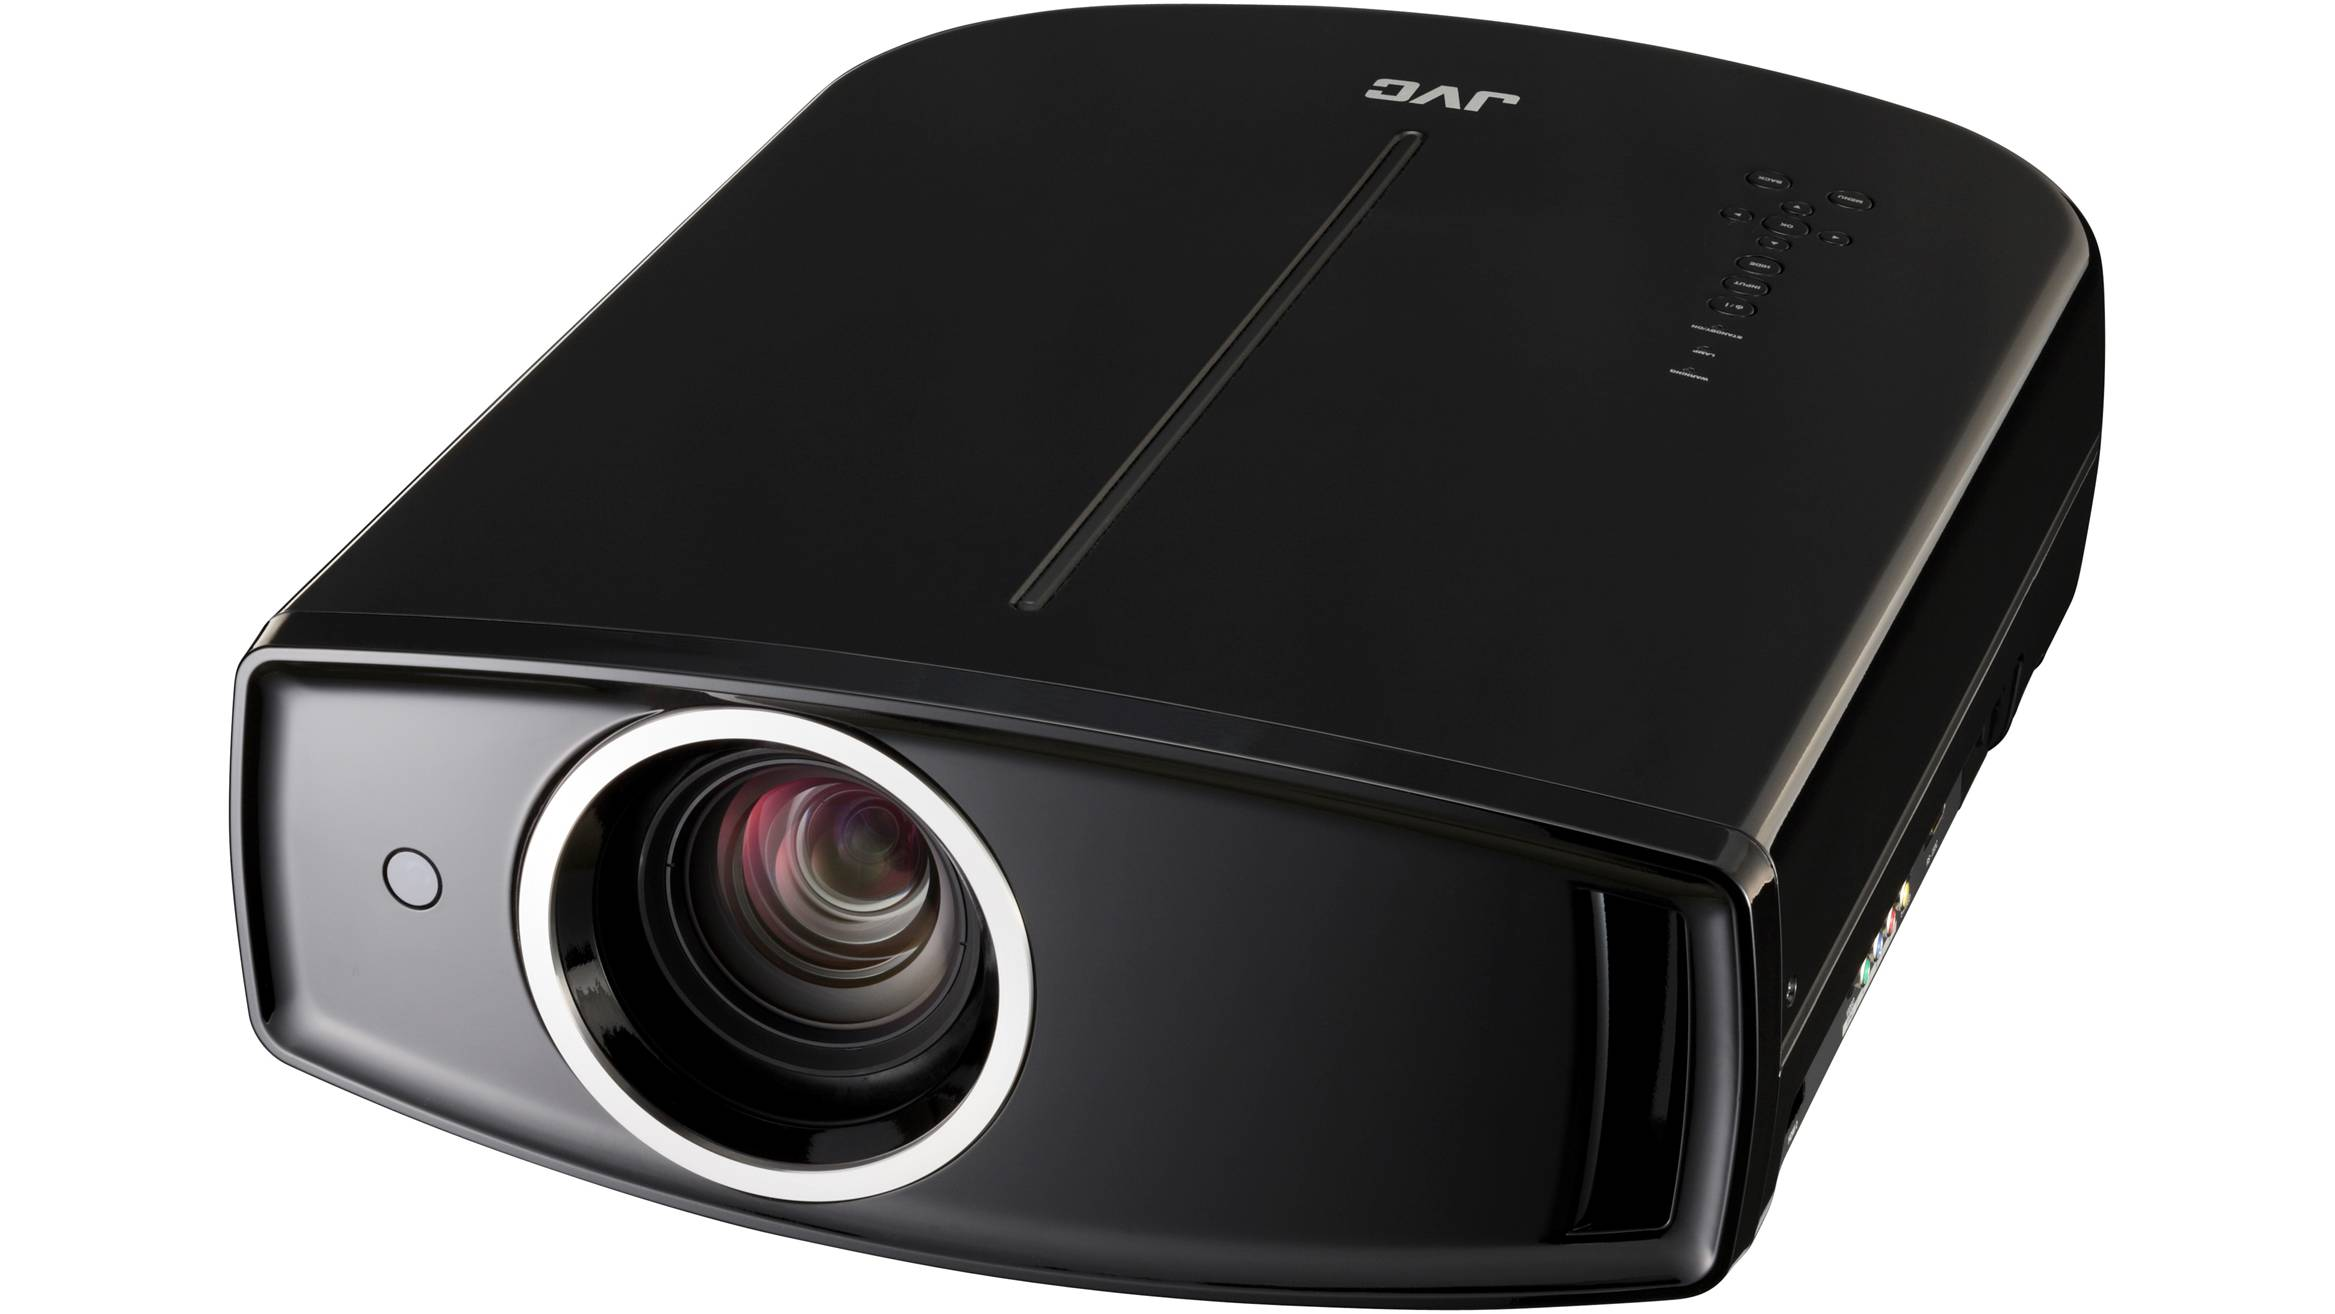 Jvc dla hd250 projector first look audioholics for Miroir hd pro projector review